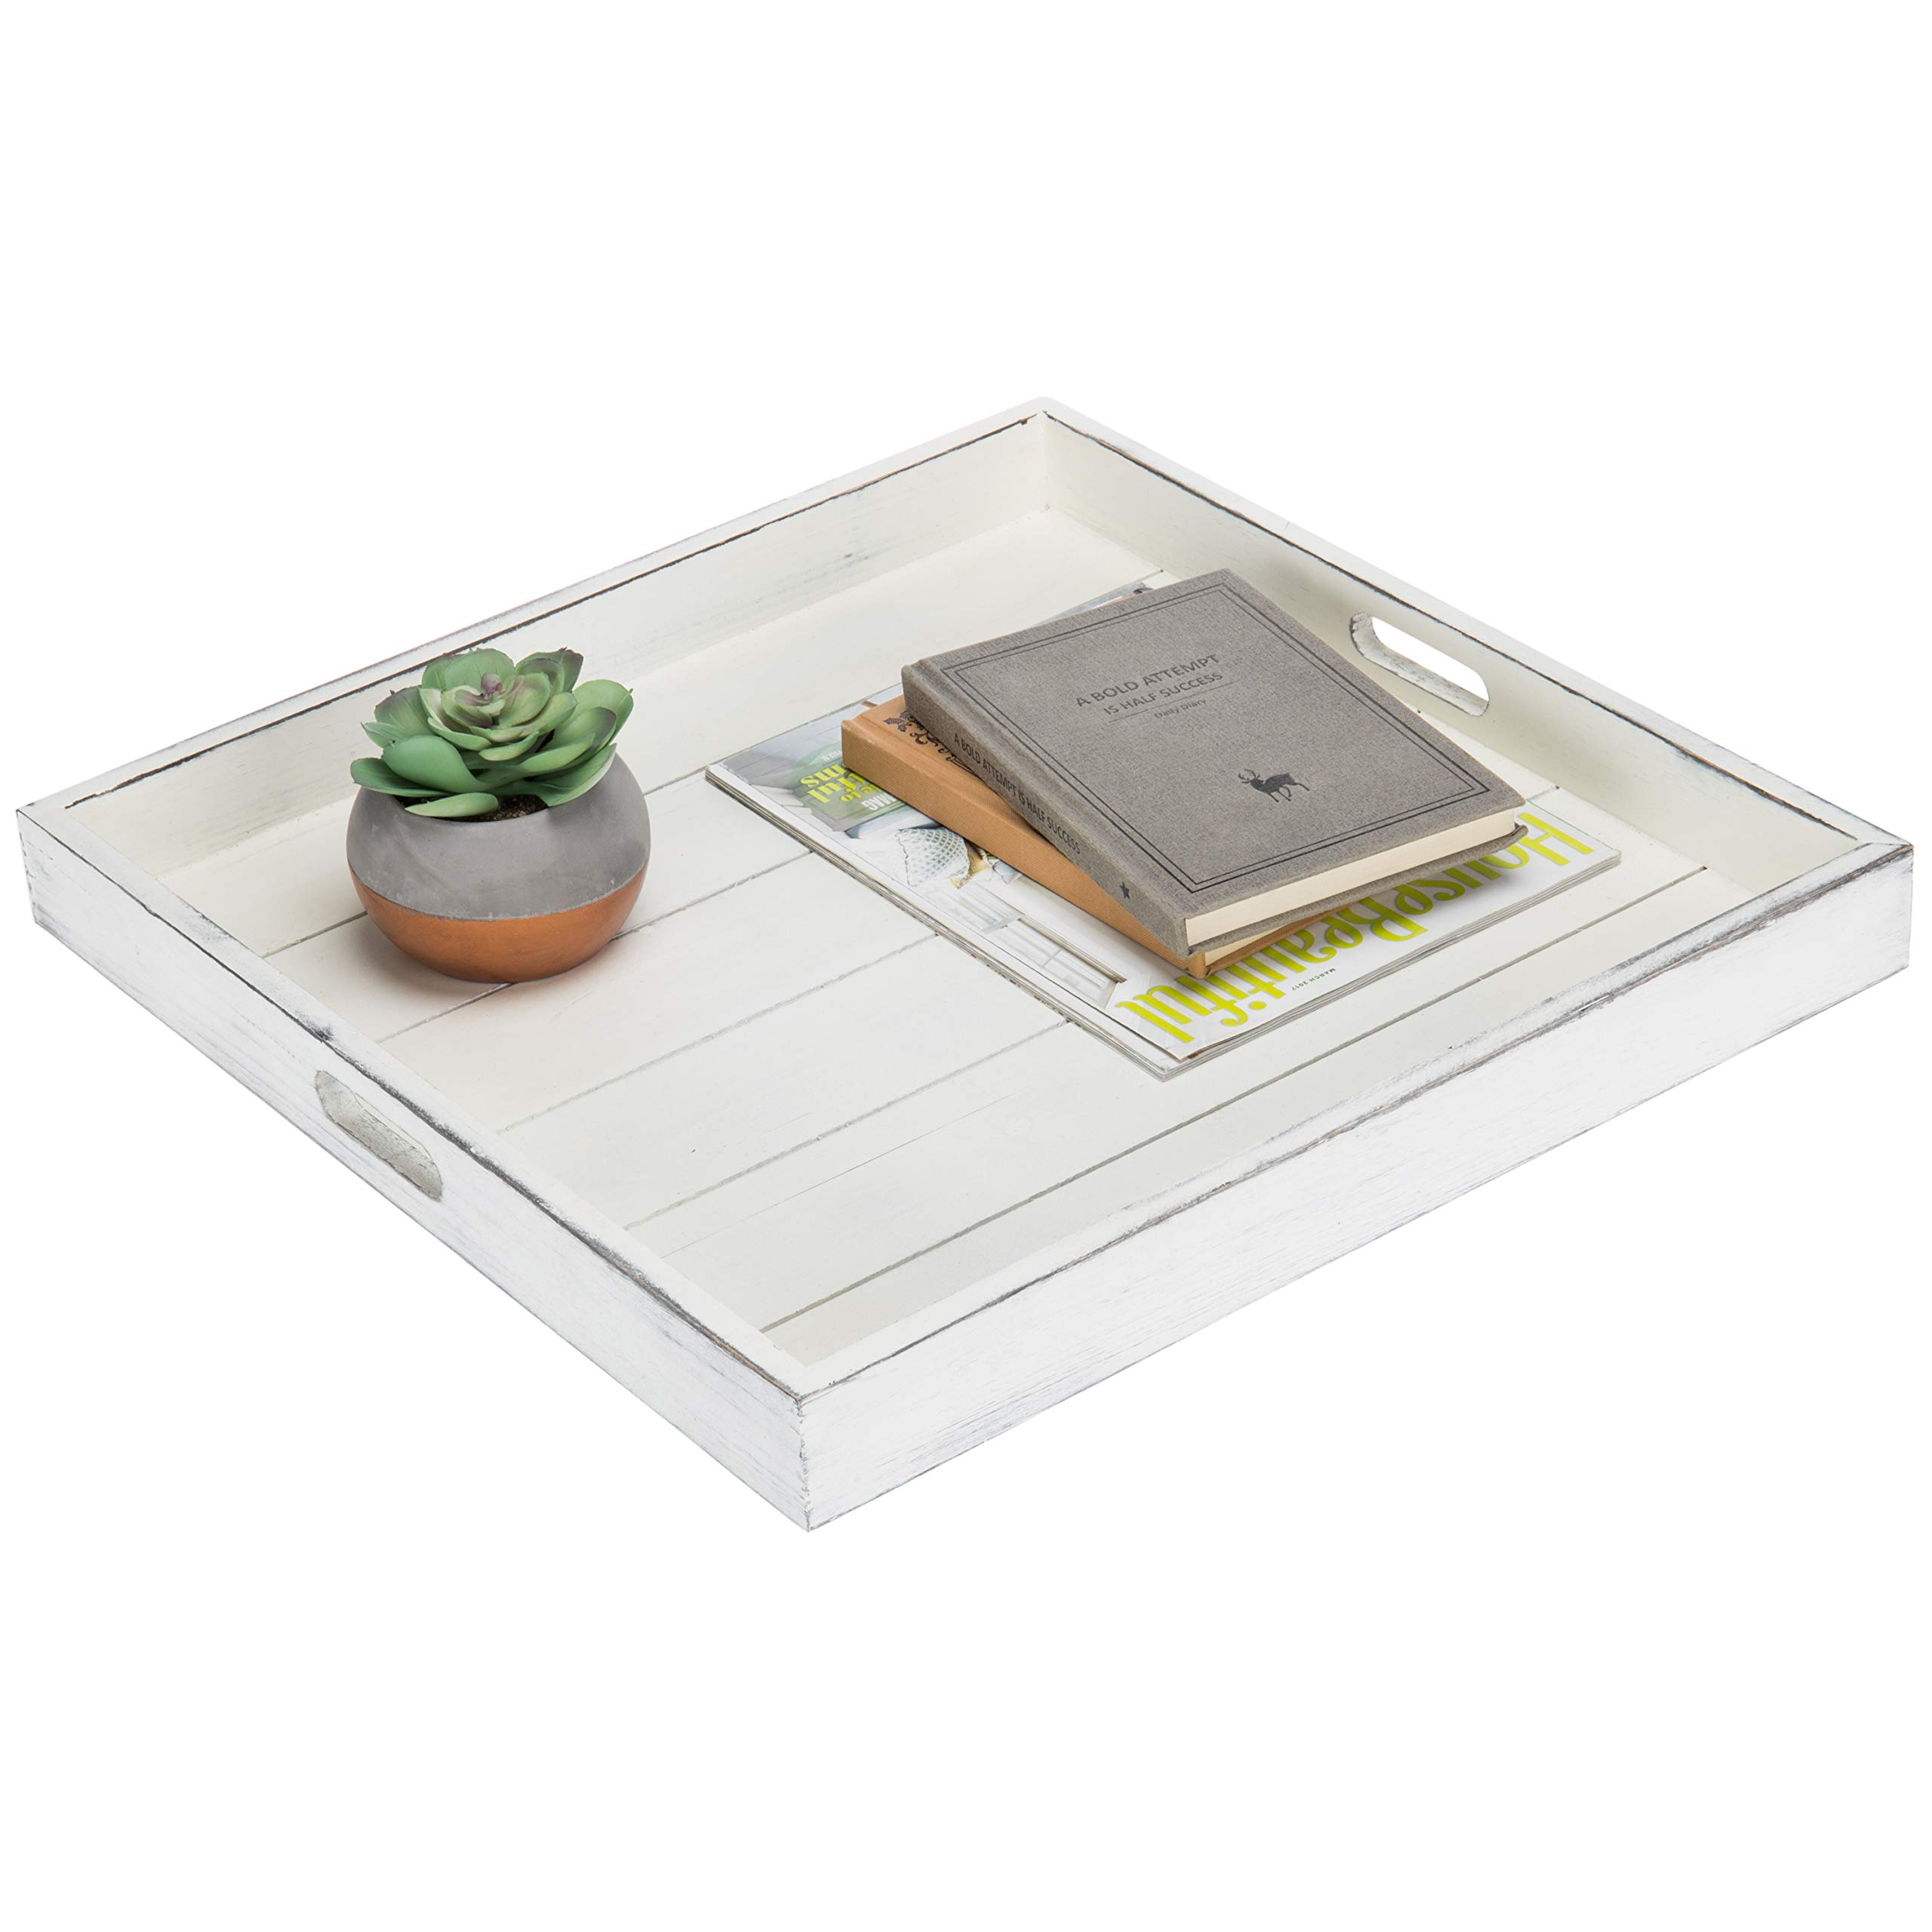 MyGift Vintage White 19-Inch Square Ottoman/Serving Tray with Cutout Handles by MyGift